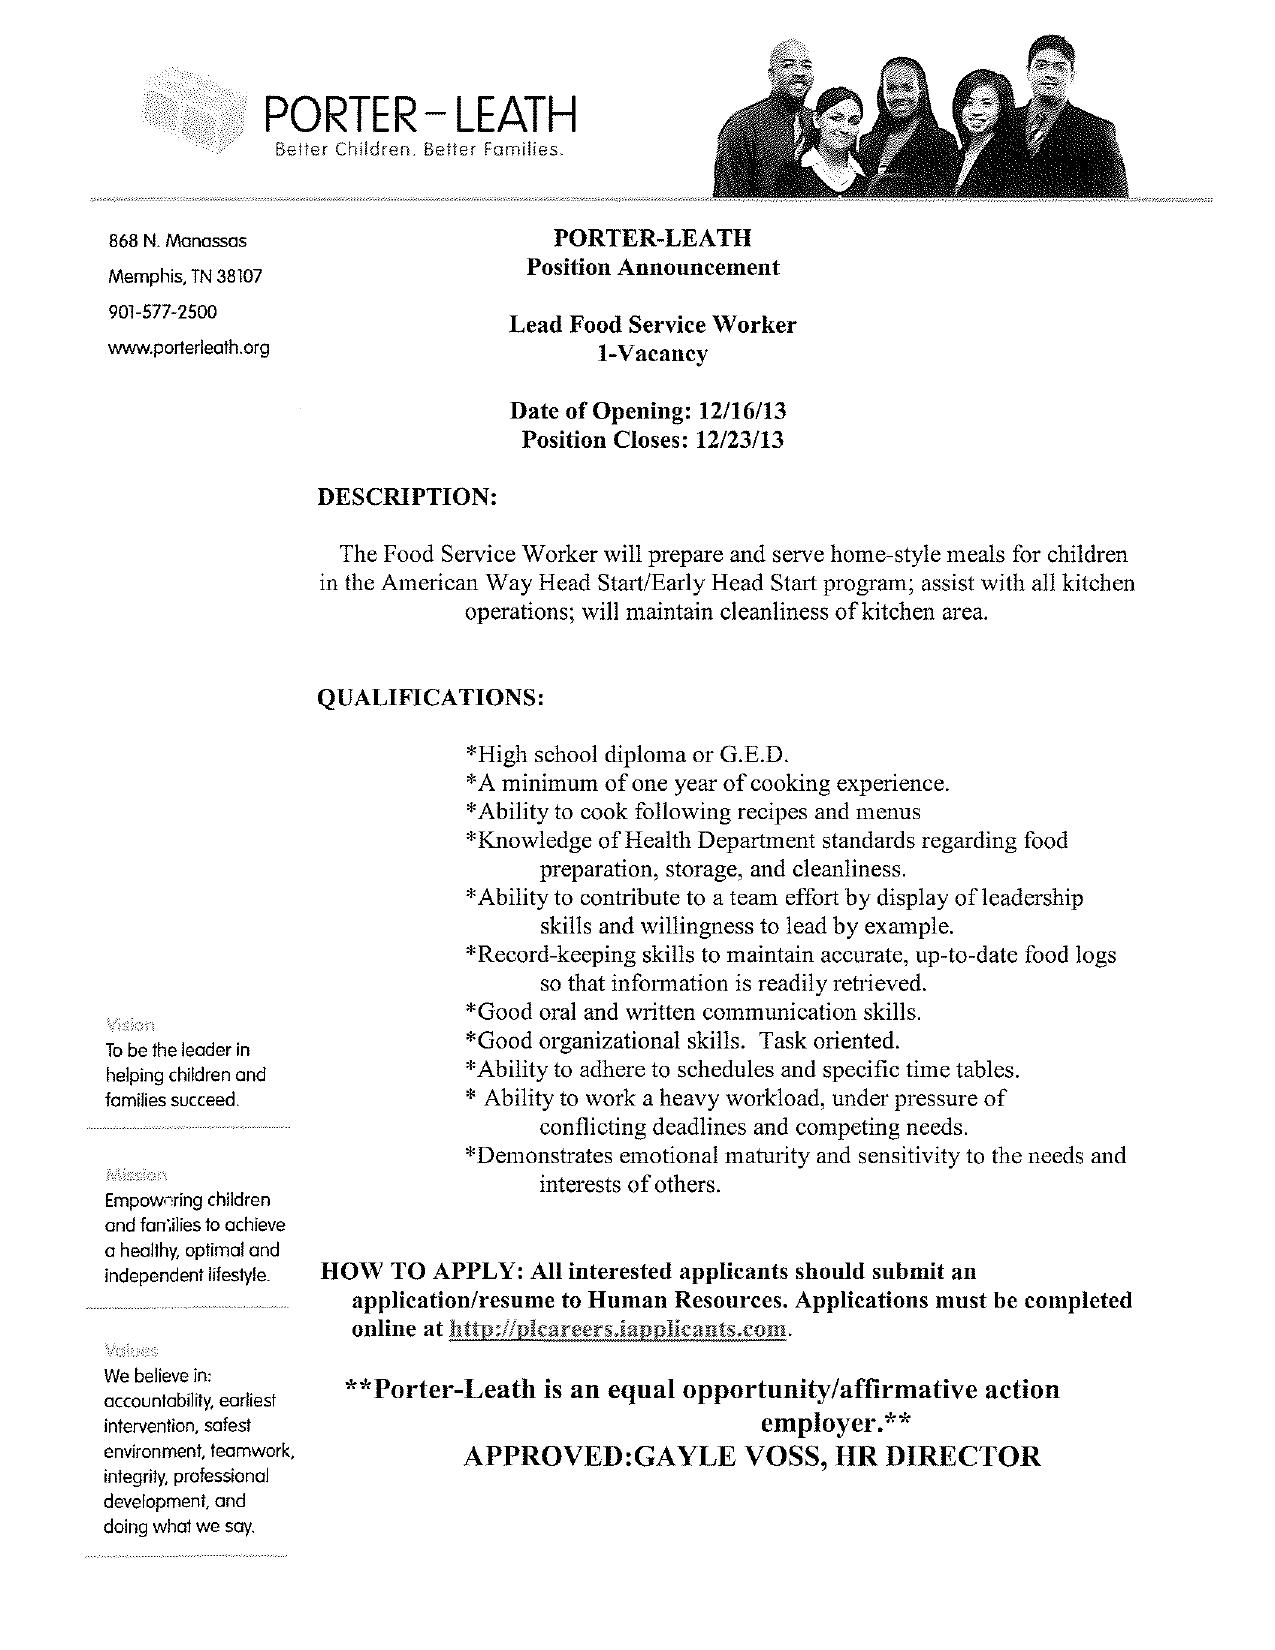 food service resume example 31052017 - Resume Food Service Worker